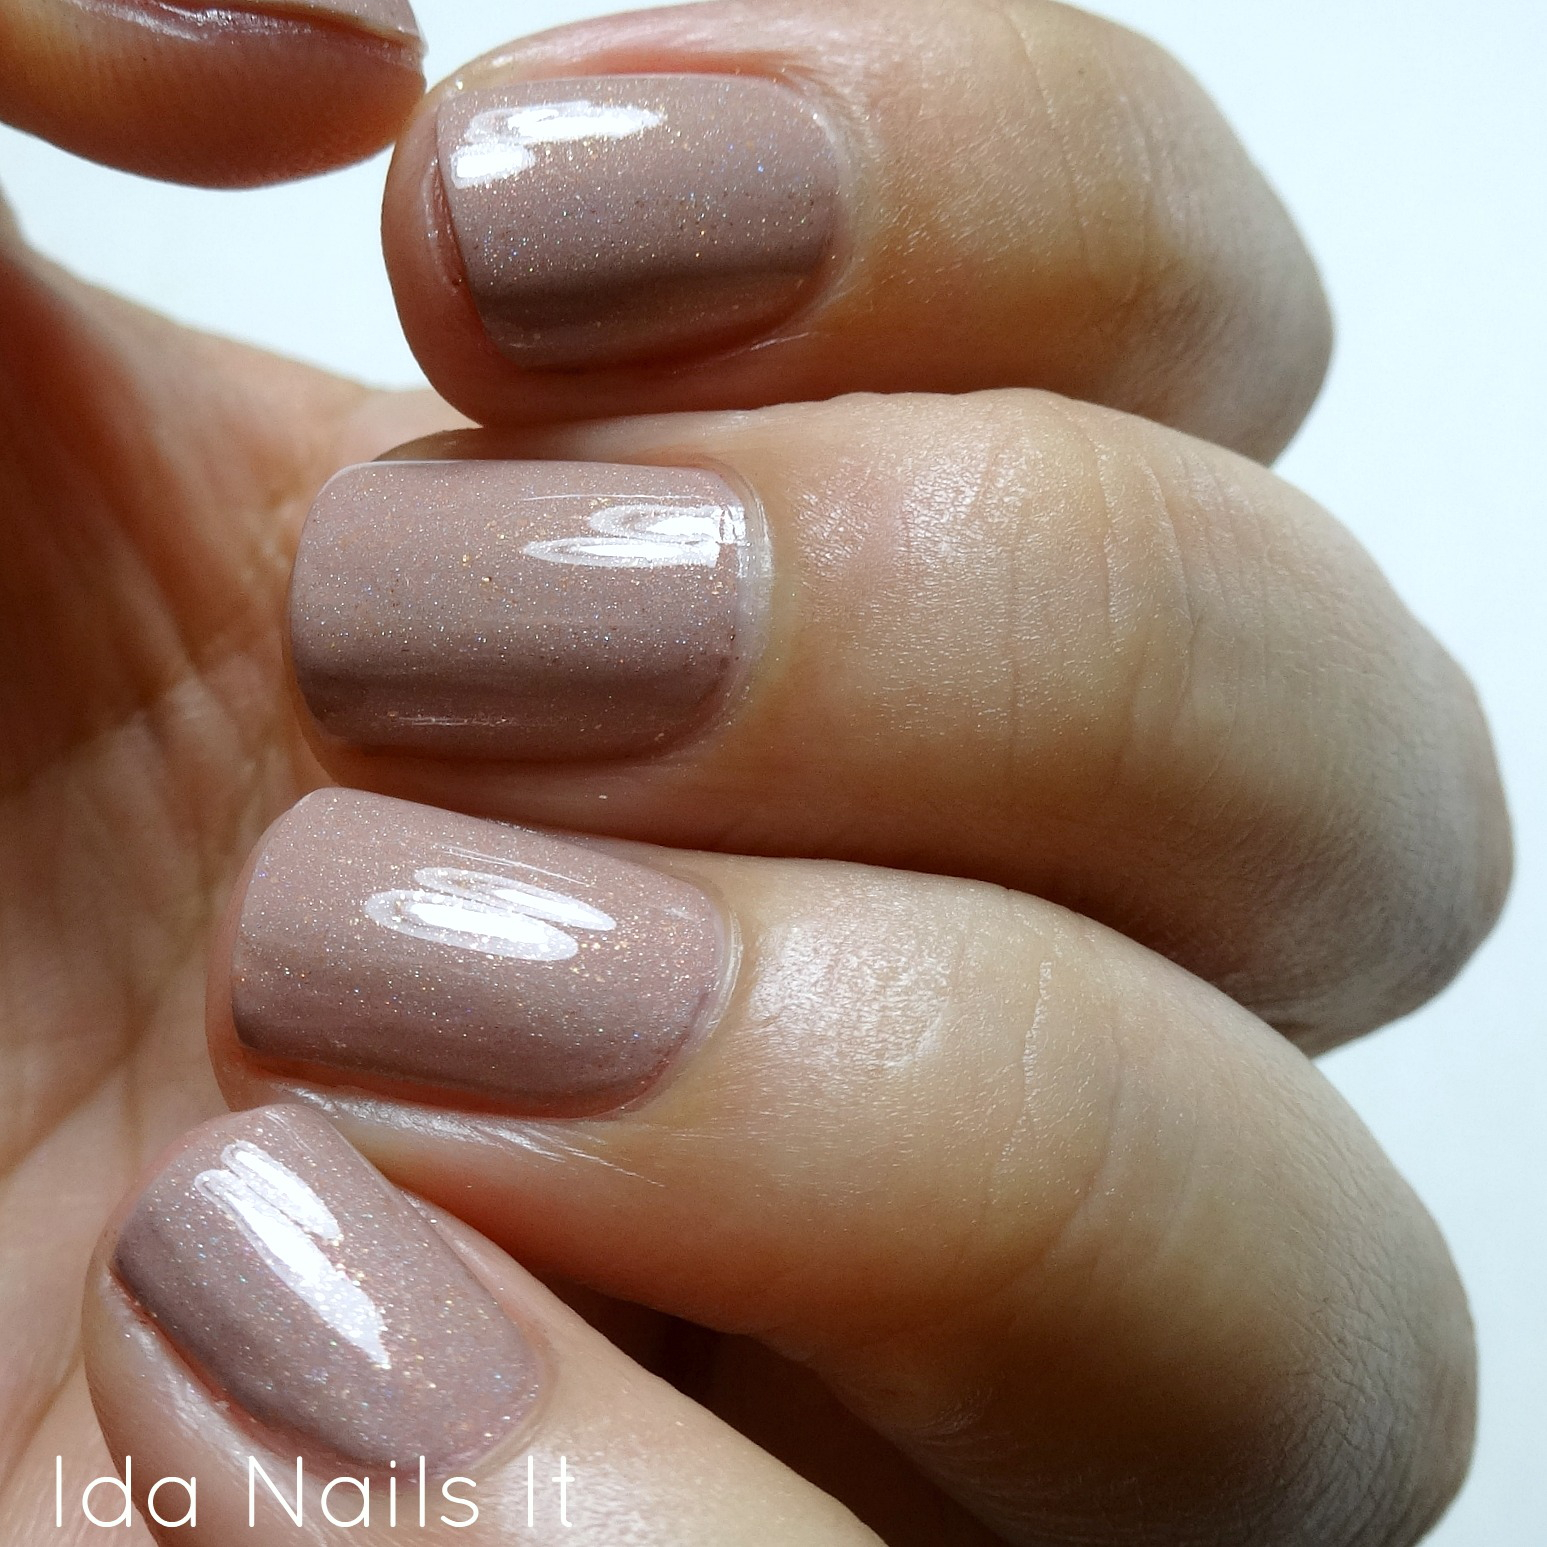 Ida Nails It: Polished for Days Fall 2016 Positive Life Collection ...